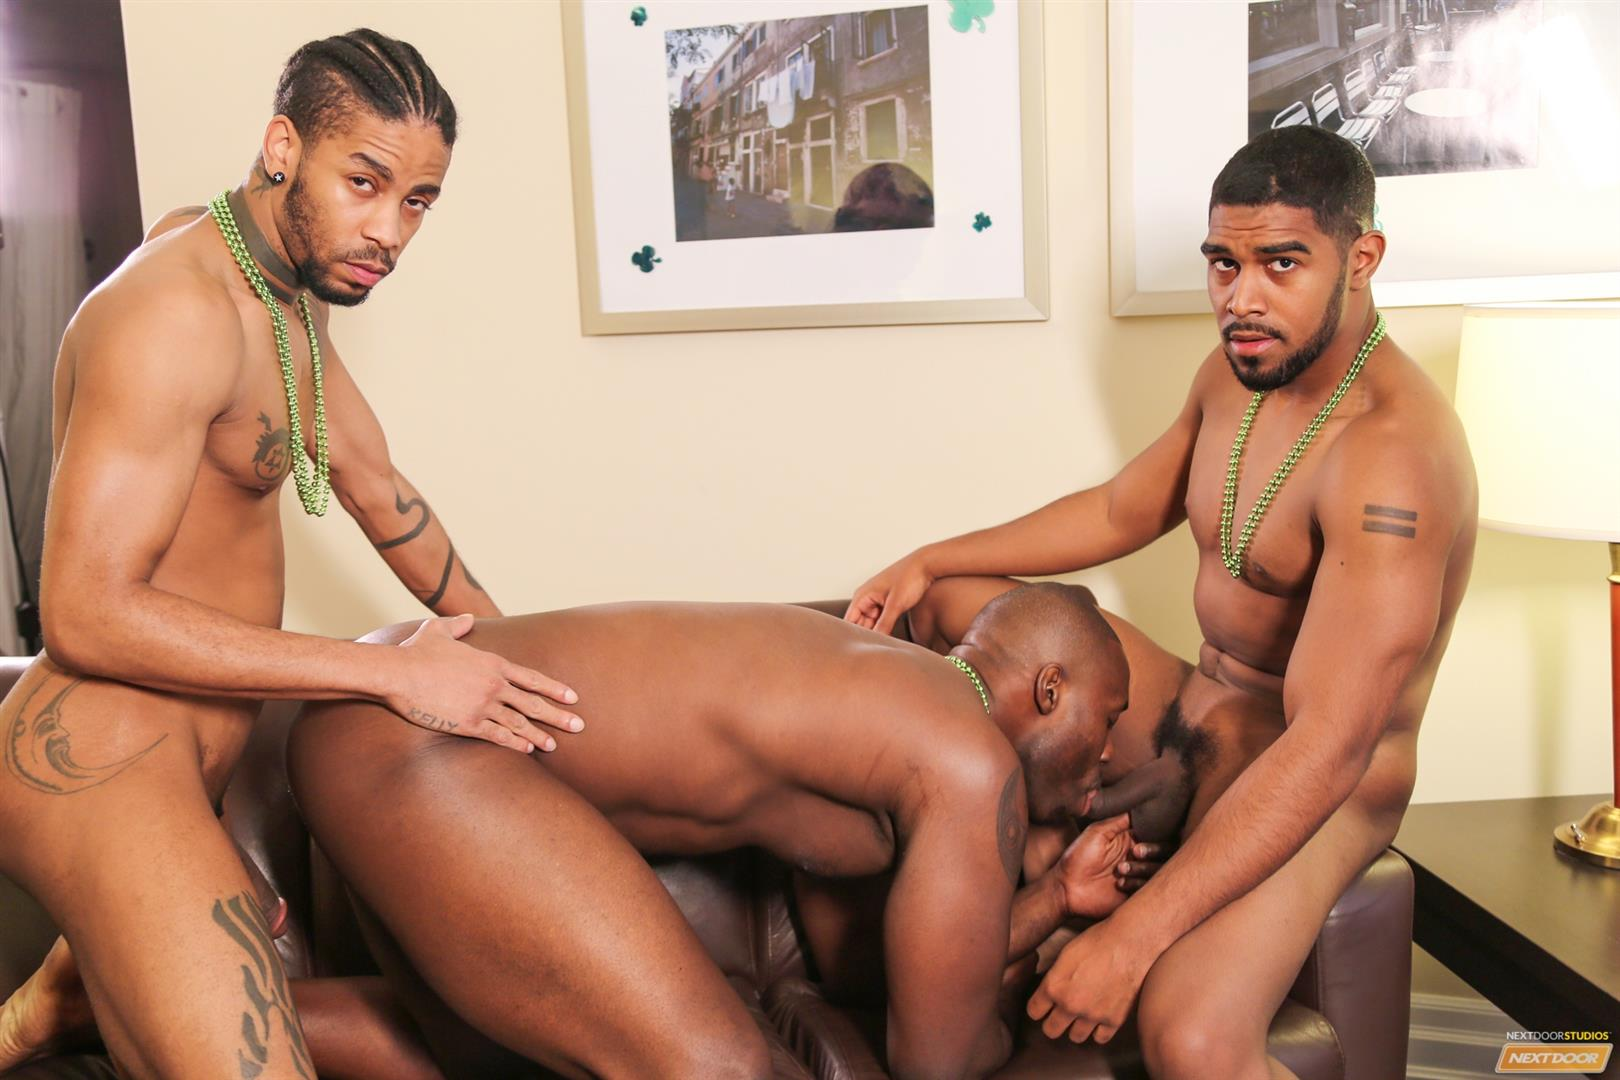 Next Door Ebony Nubius and Jin Powers and XL Naked Thugs Threeway Fucking Amateur Gay Porn 11 Big Black Cock Threeway Suck and Fuck Thug Fest